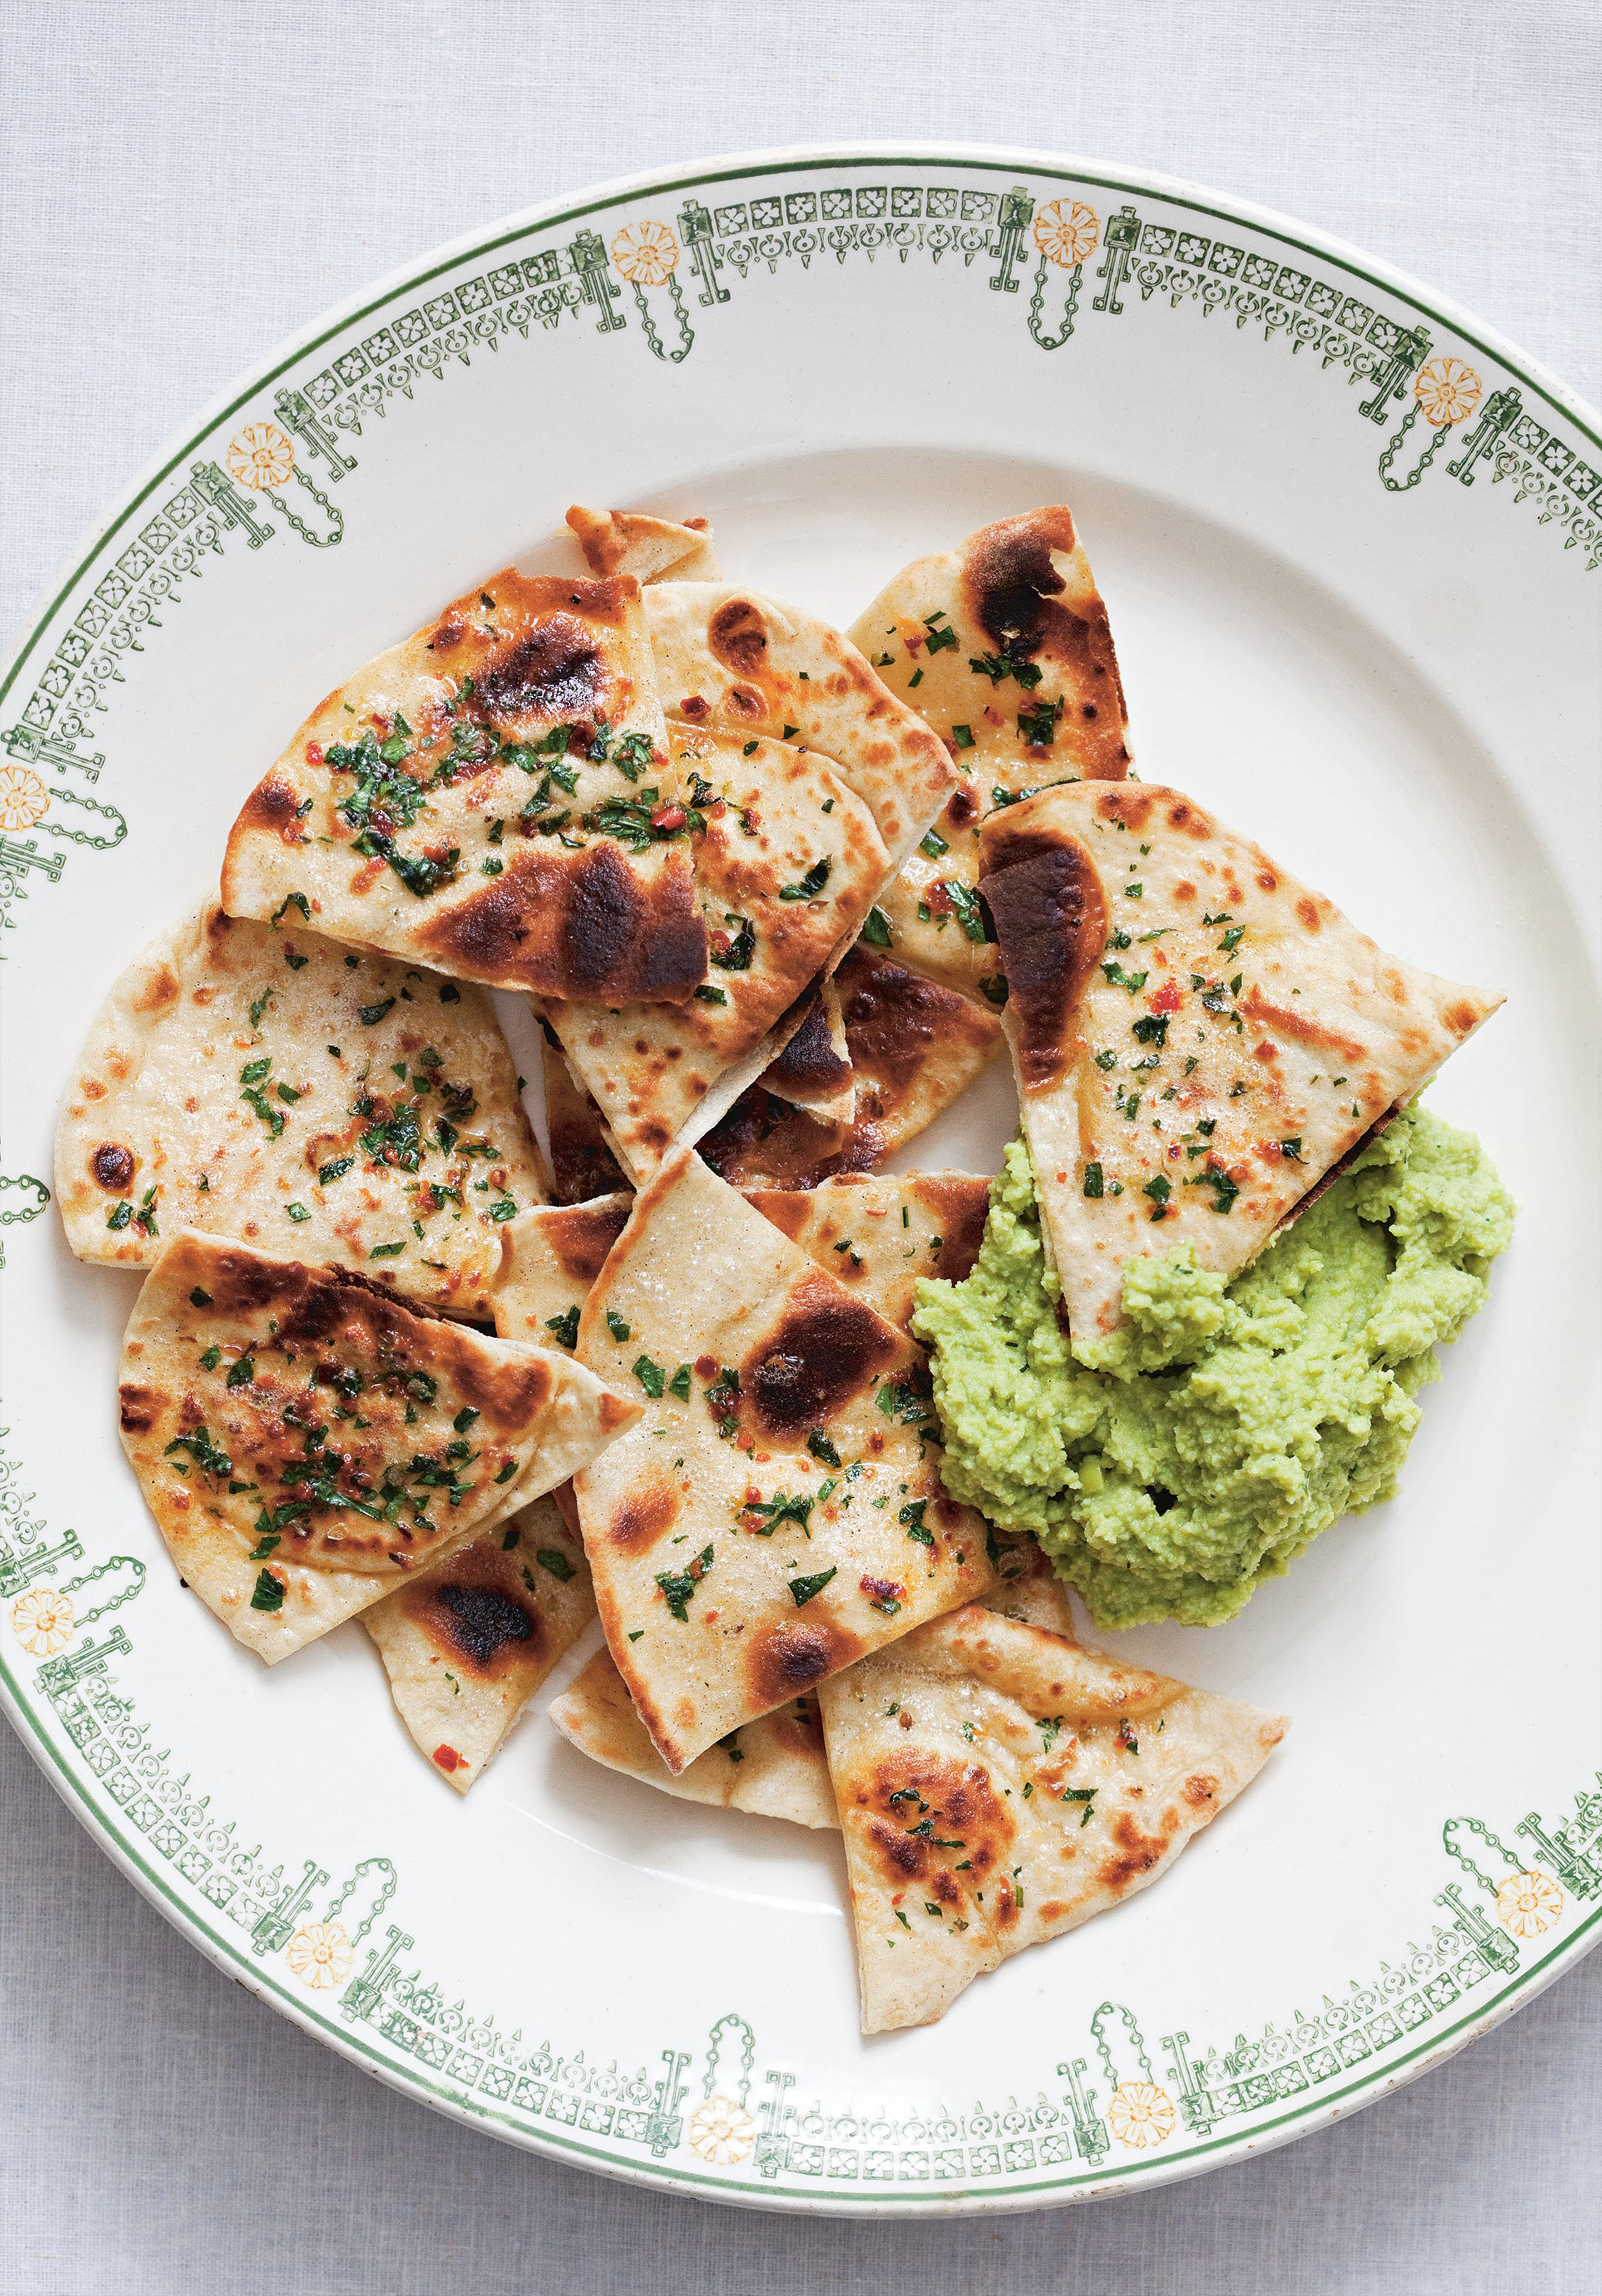 Broad bean dip (with crispy herbed flatbreads)